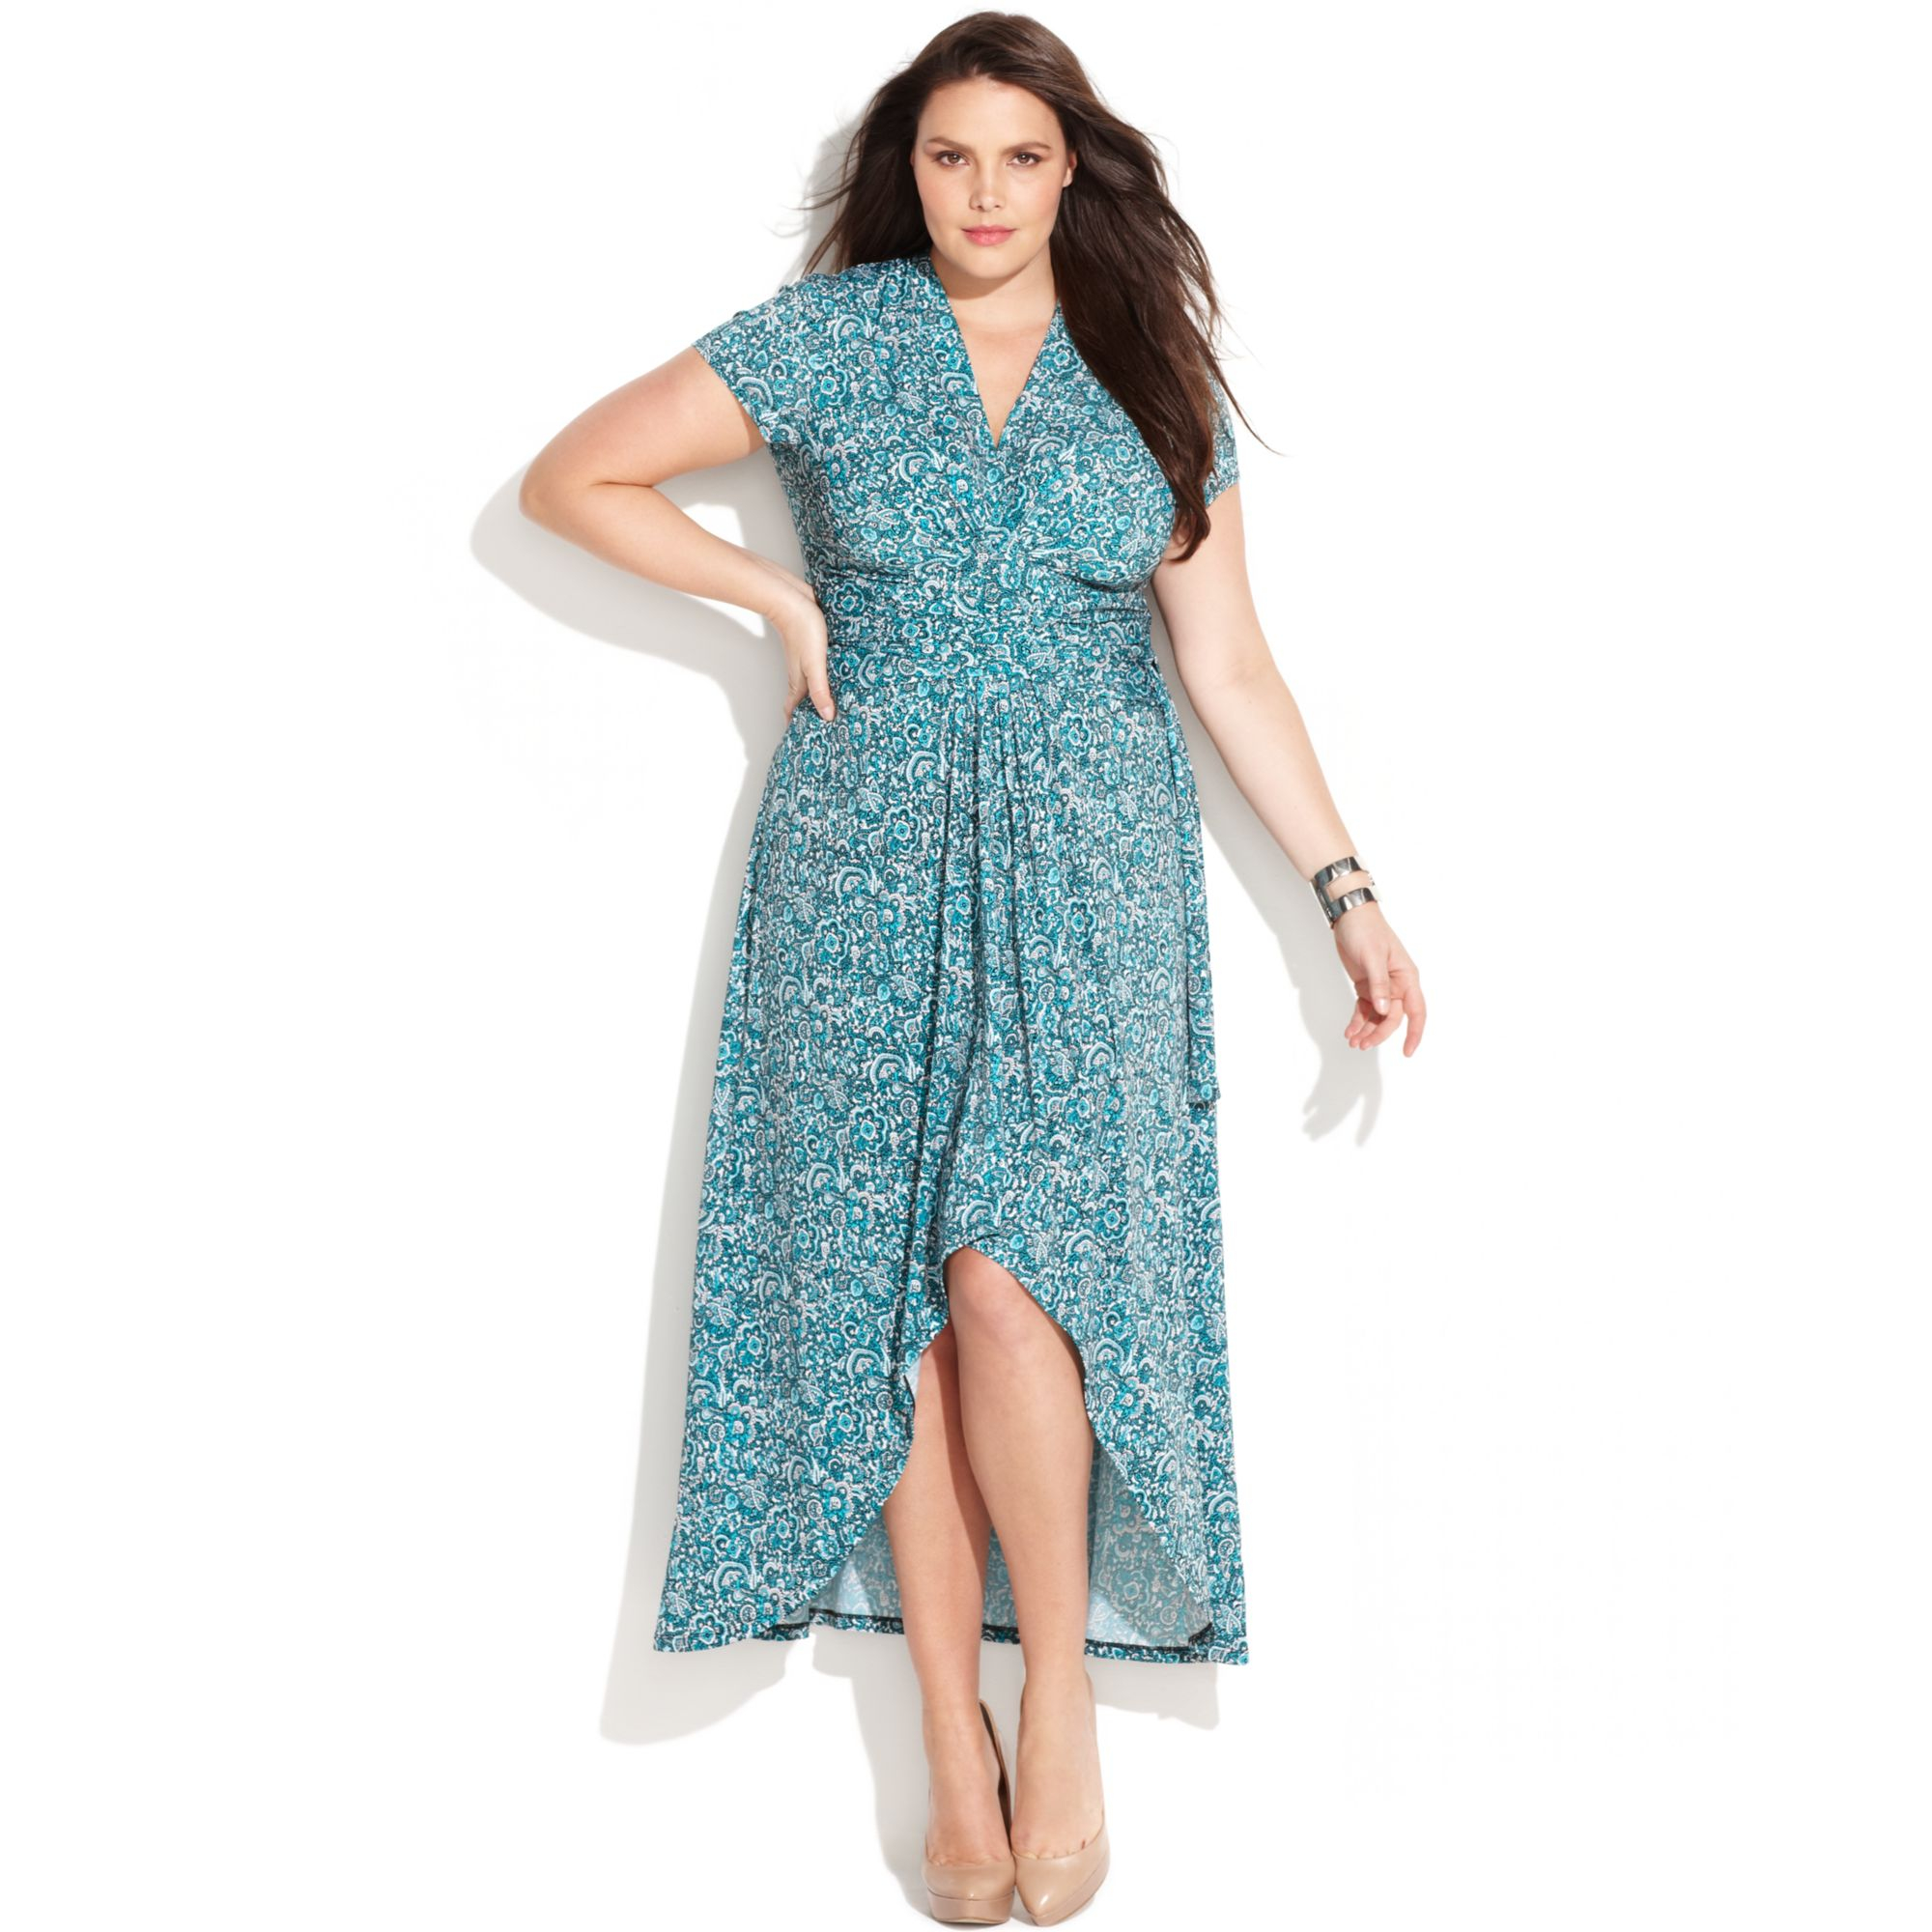 bc5a4187962 Lyst - Michael Kors Plus Size Printed Faux Wrap Maxi Dress in Blue